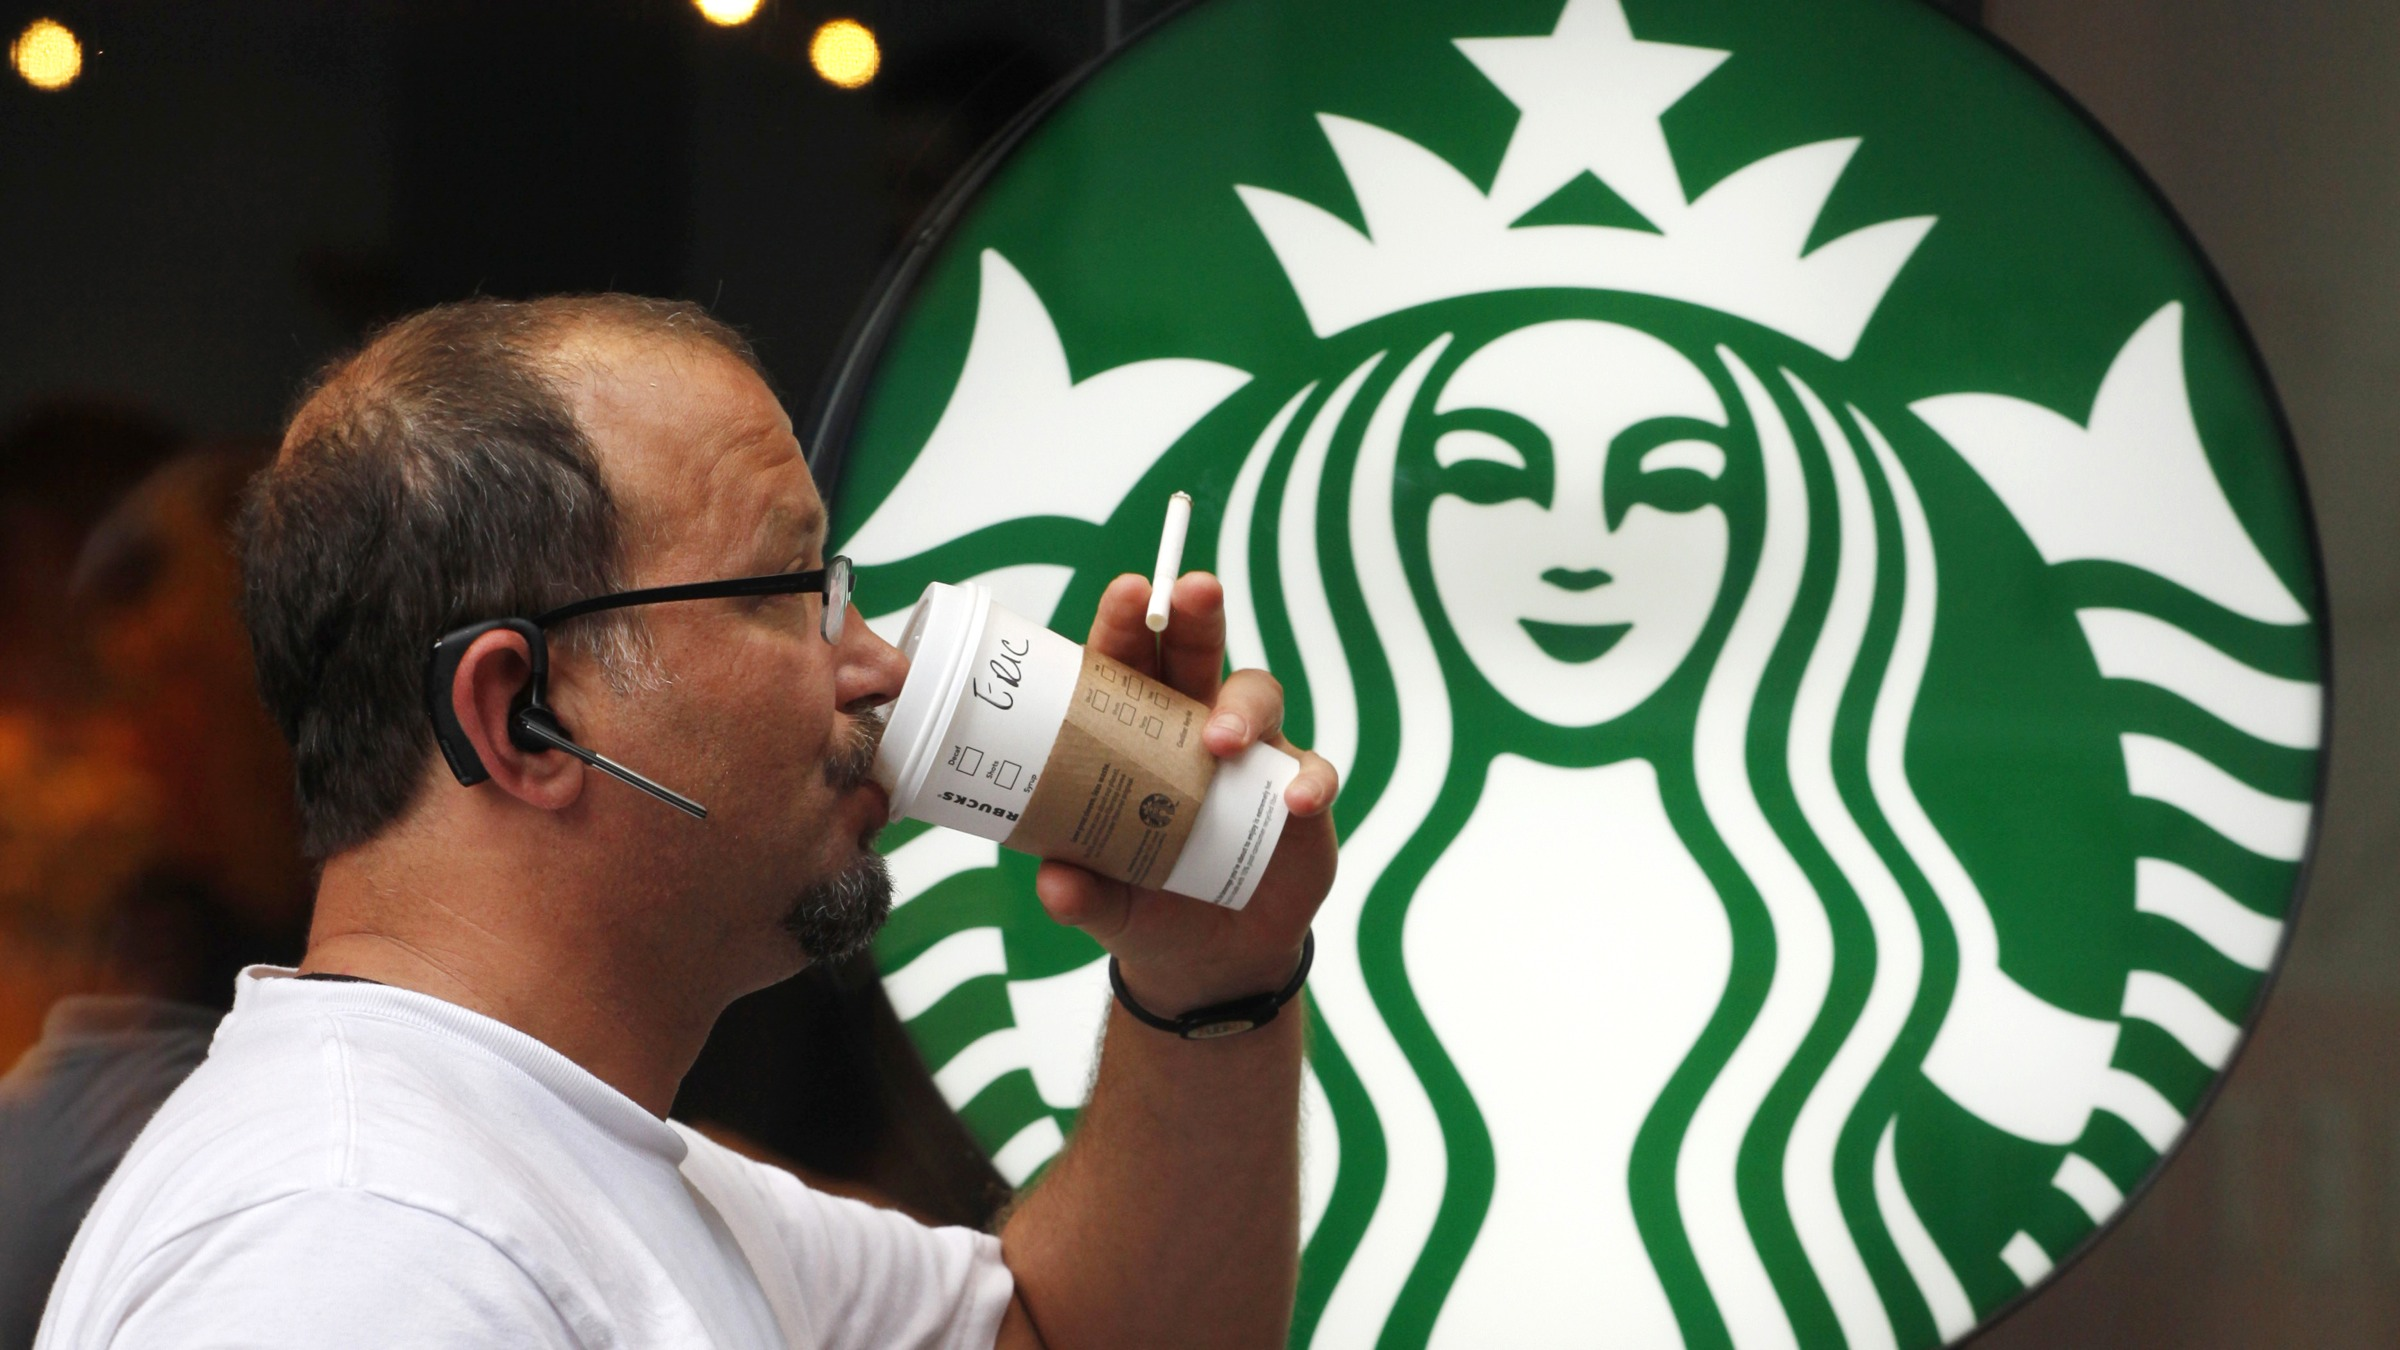 In this July 11, 2013 photo, a man drinks a Starbucks coffee in New York. (AP Photo/Mark Lennihan)